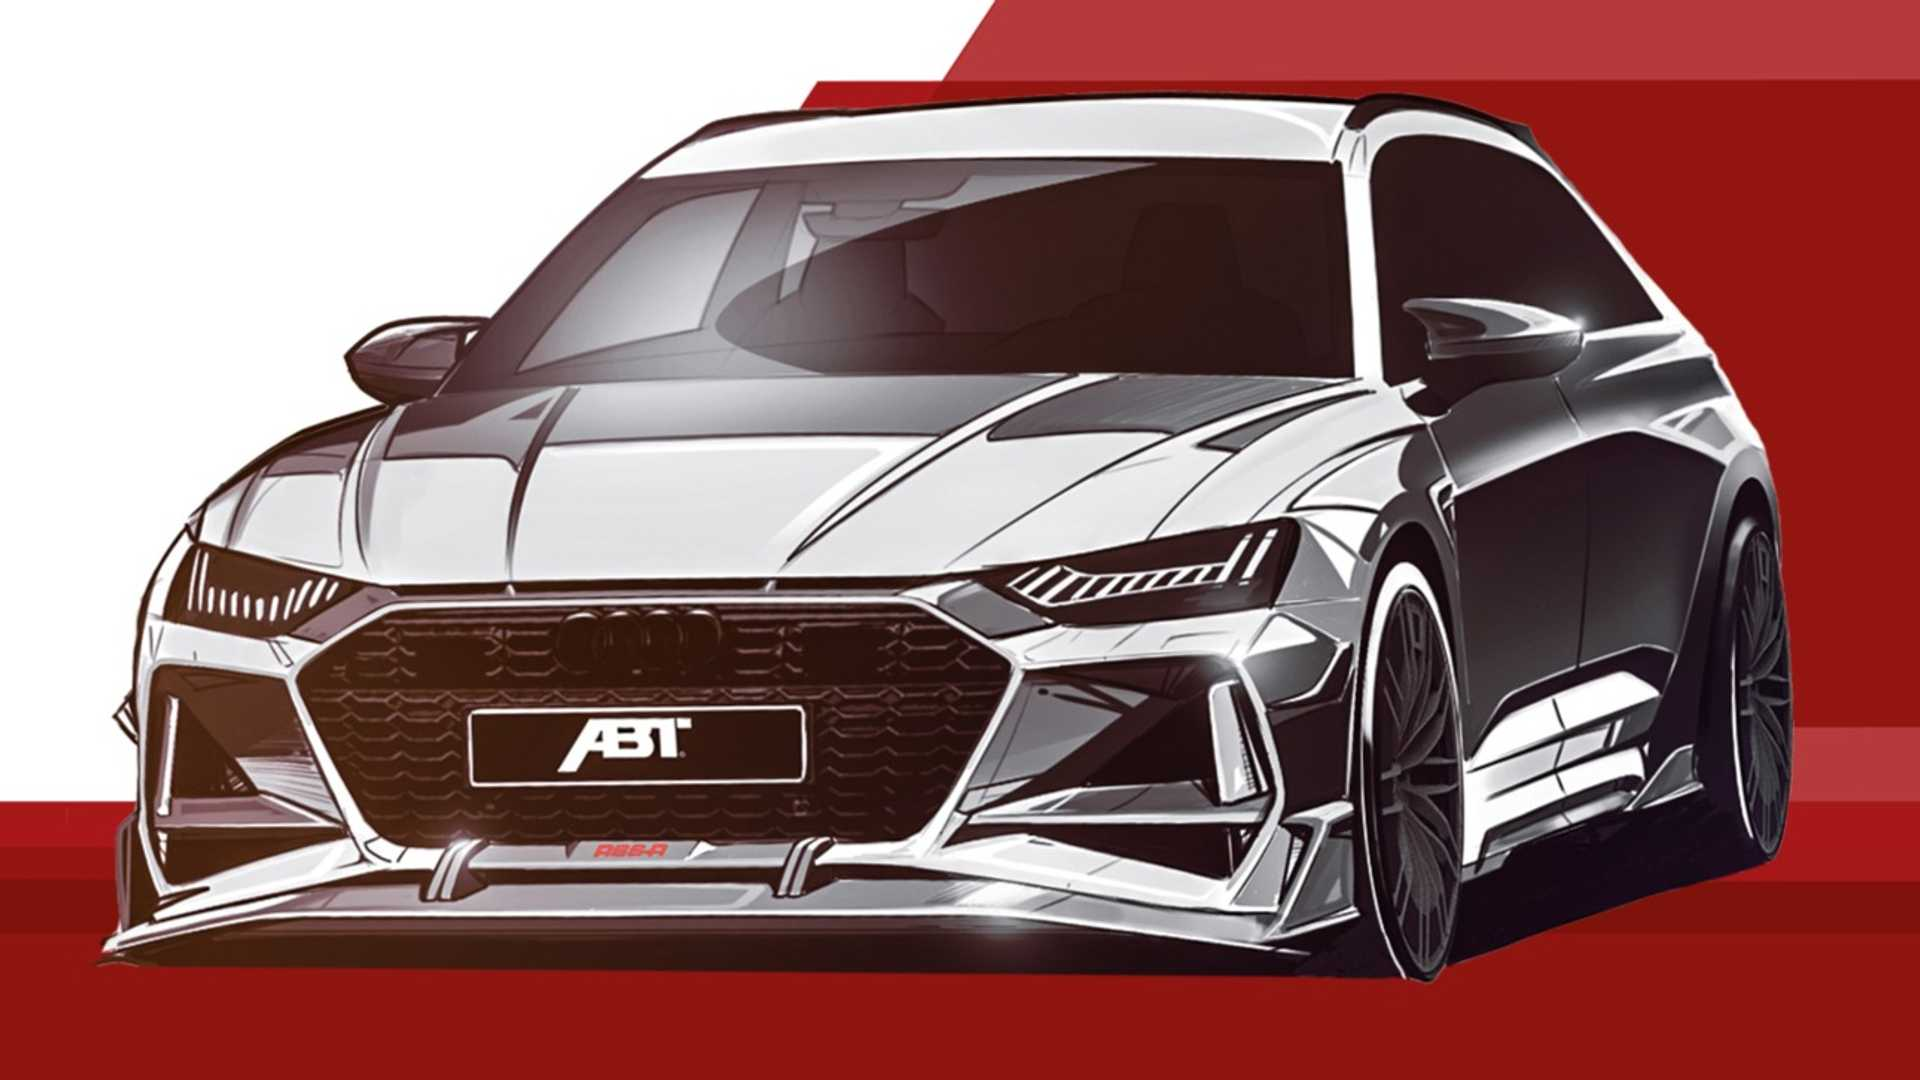 2020-abt-rs6-r-based-on-the-audi-rs6-avant (1)